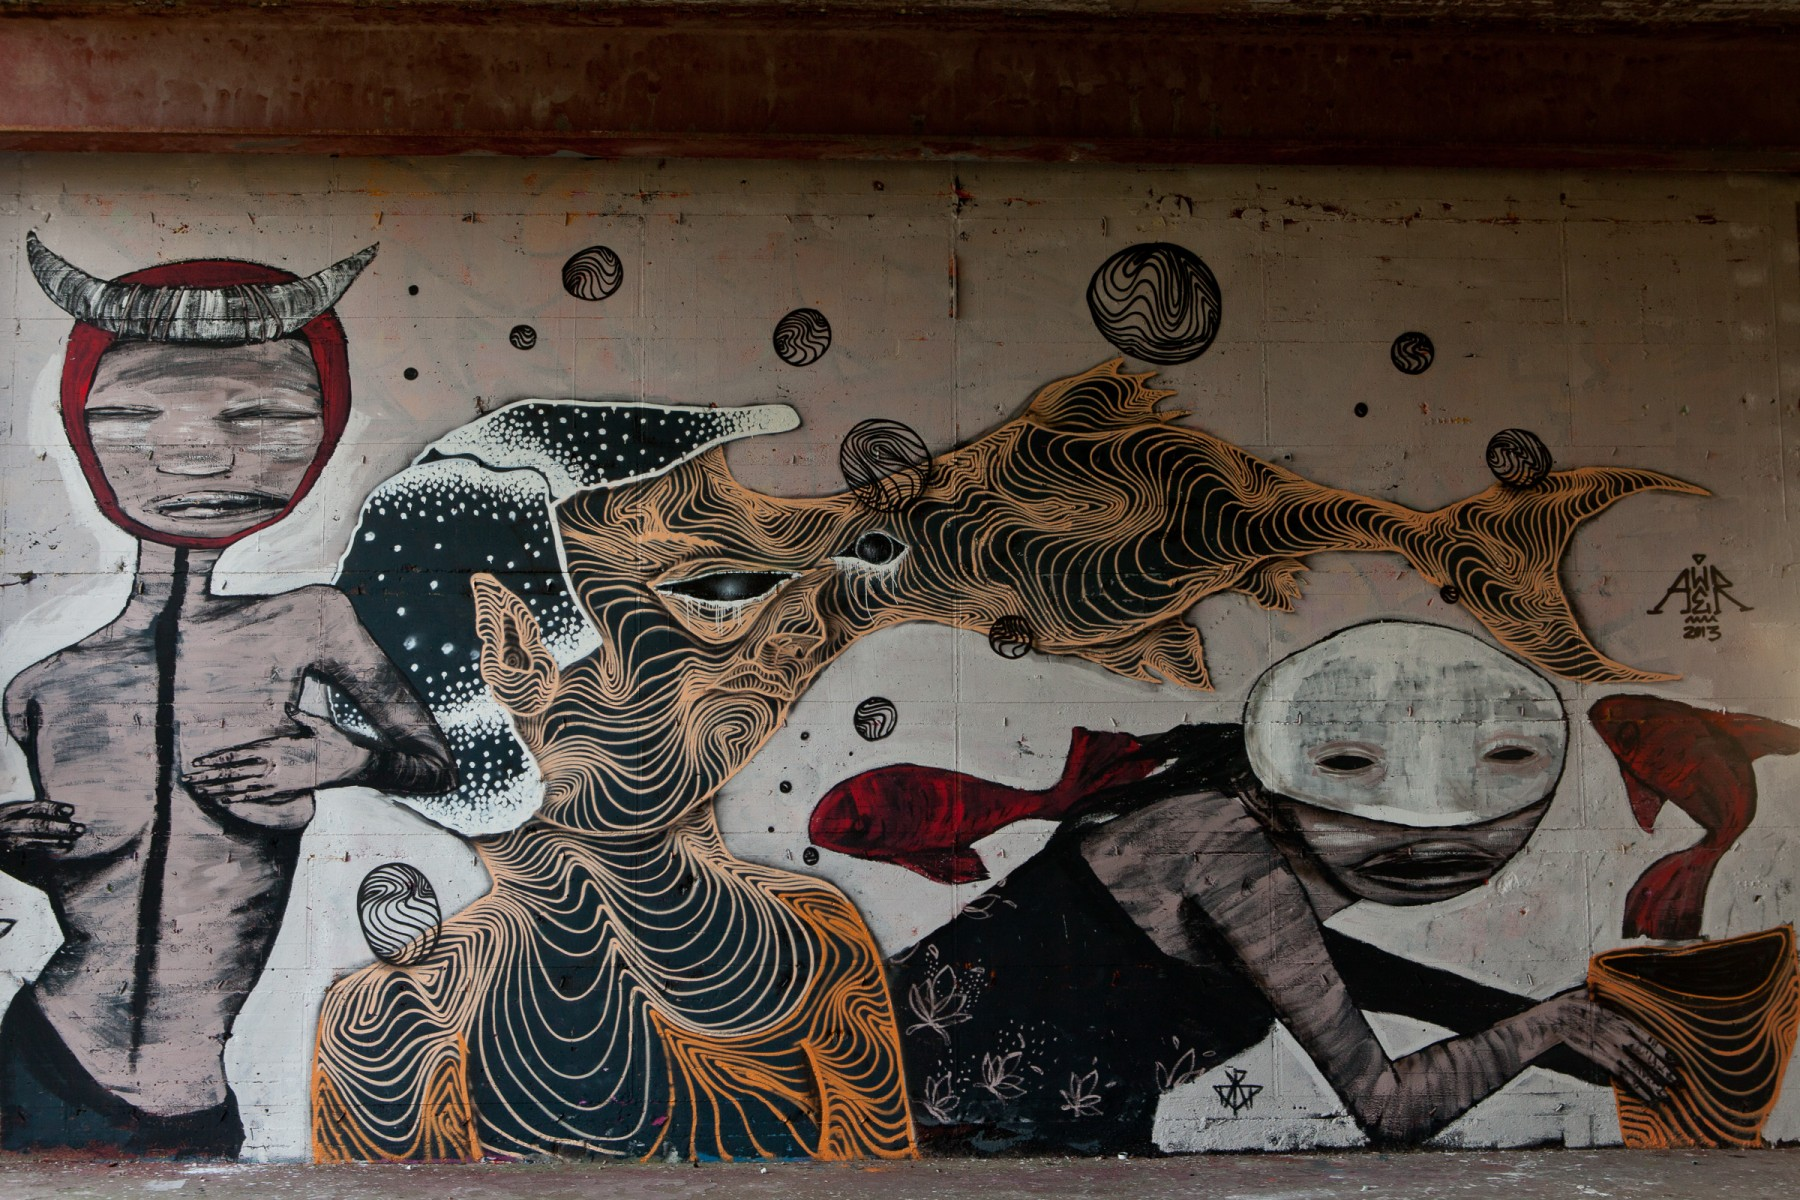 Murals at Teufelsberg